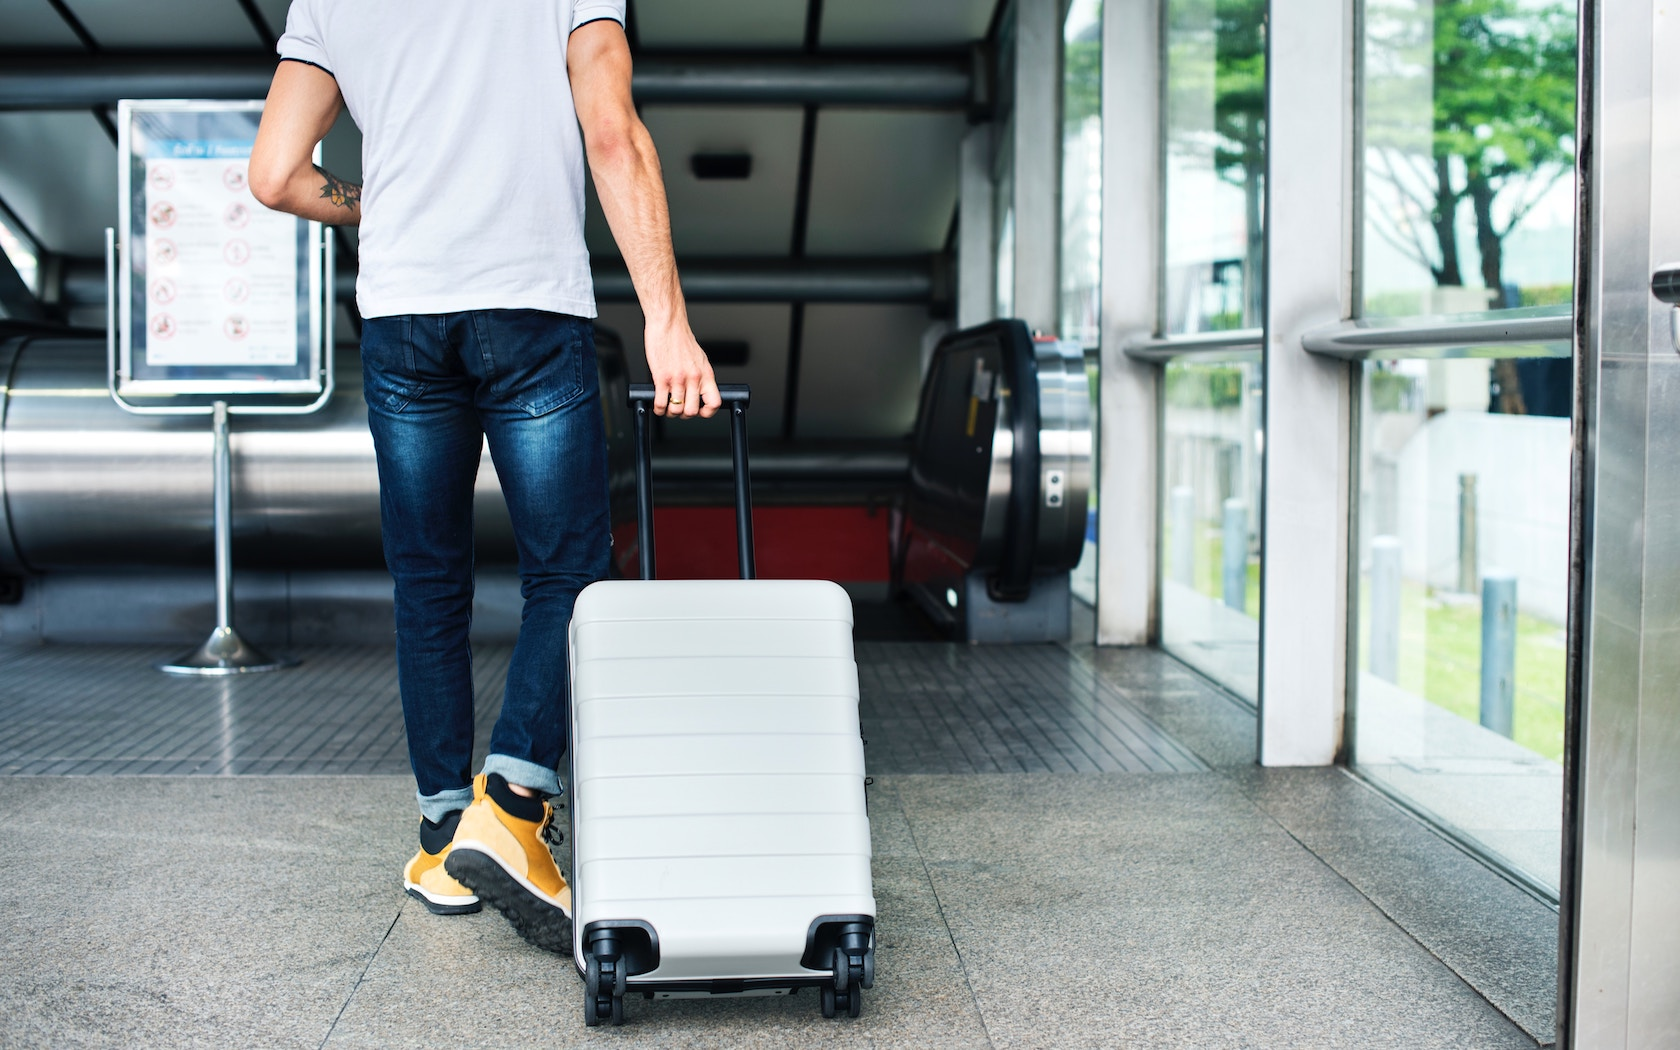 771ce97da0f0 Packing Hacks: 20 Ways To Hack Your Luggage Like A Pro